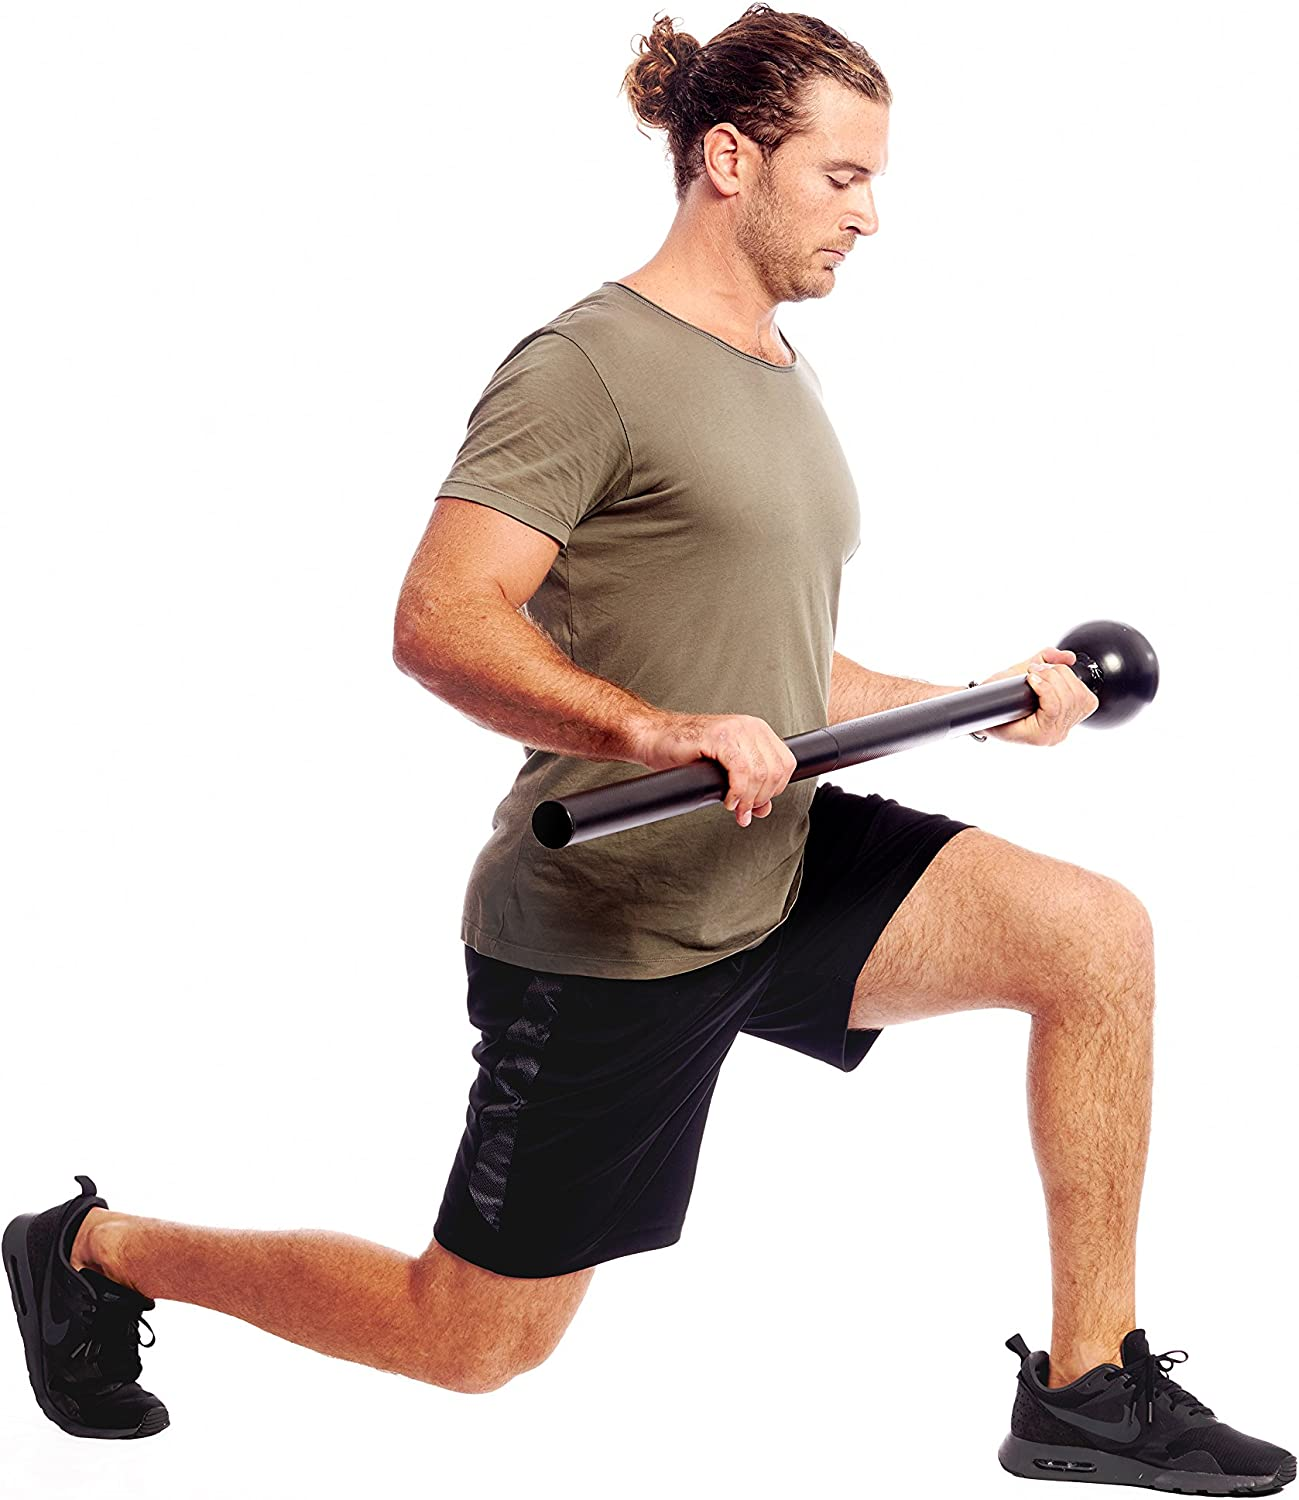 Incline Macebell Steel Fit for Full Body Workouts /& Strength Training